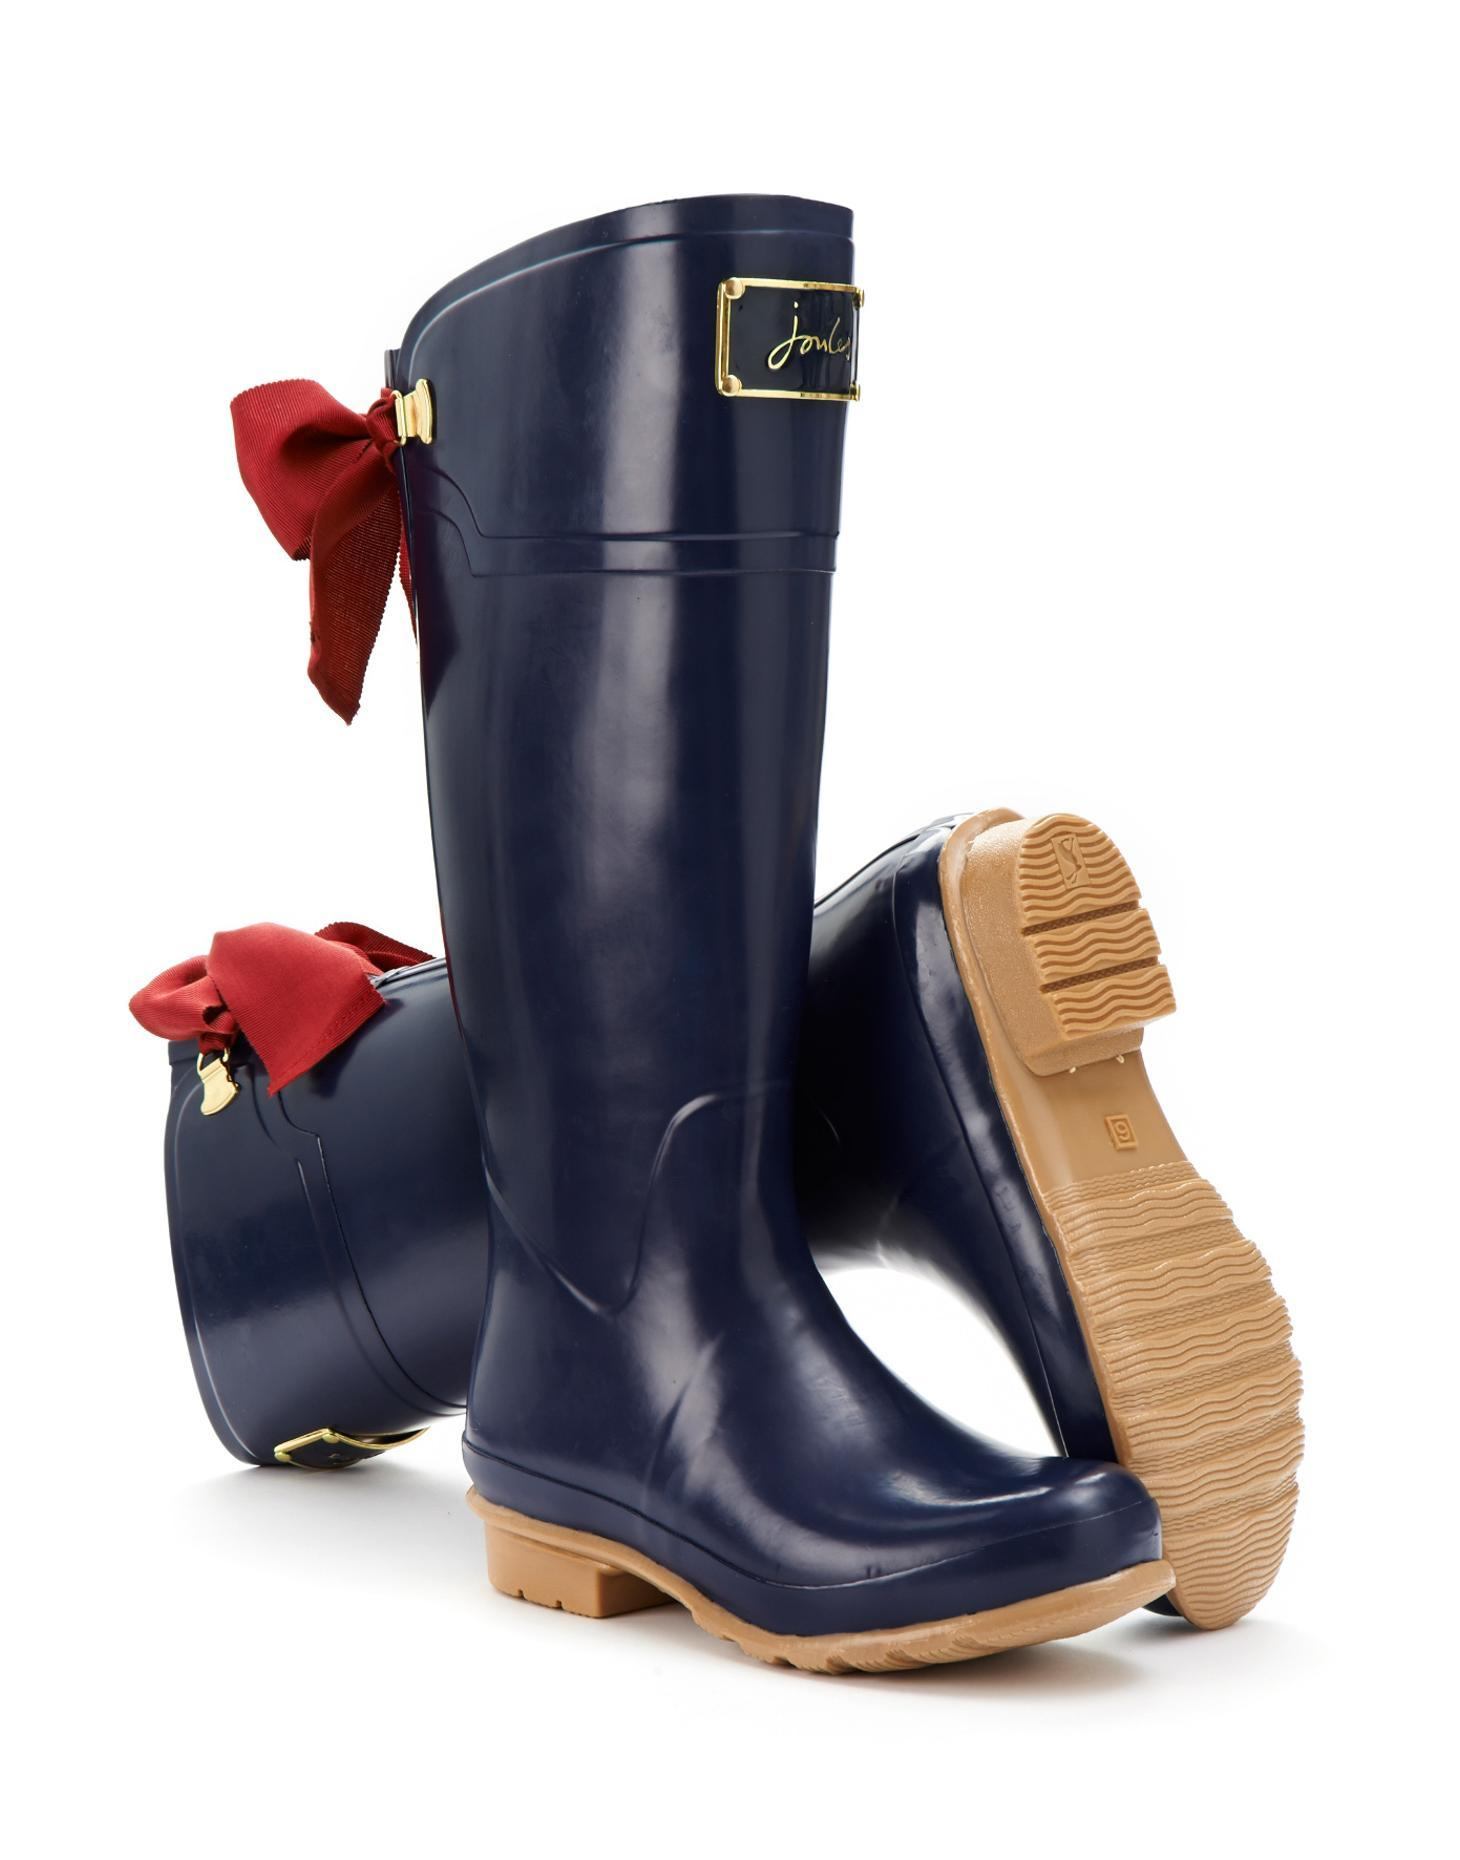 Rain Boots With Bows 9qG2ObC6